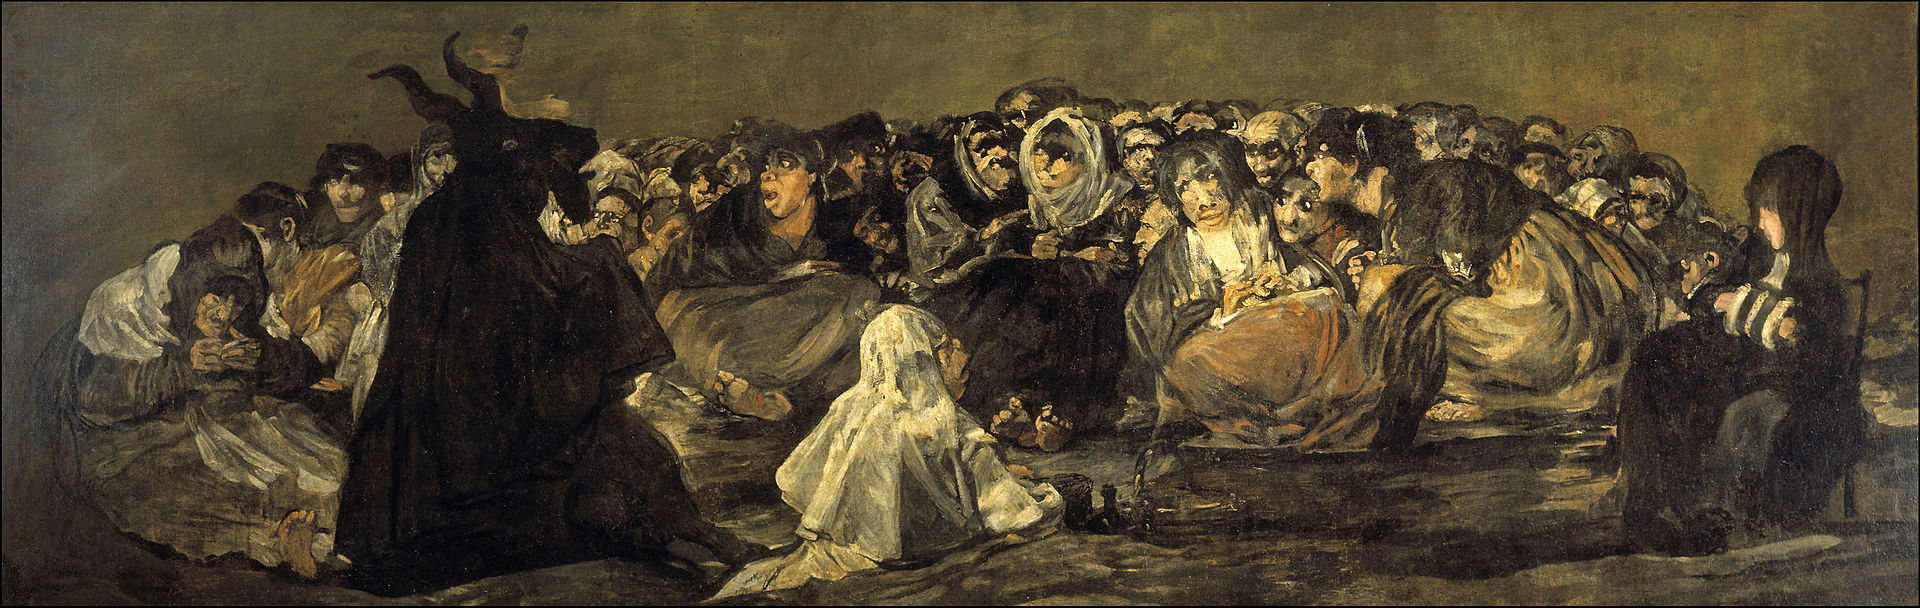 Pinturas Negras Goya Goya S Pinturas Negras On Art And Aesthetics